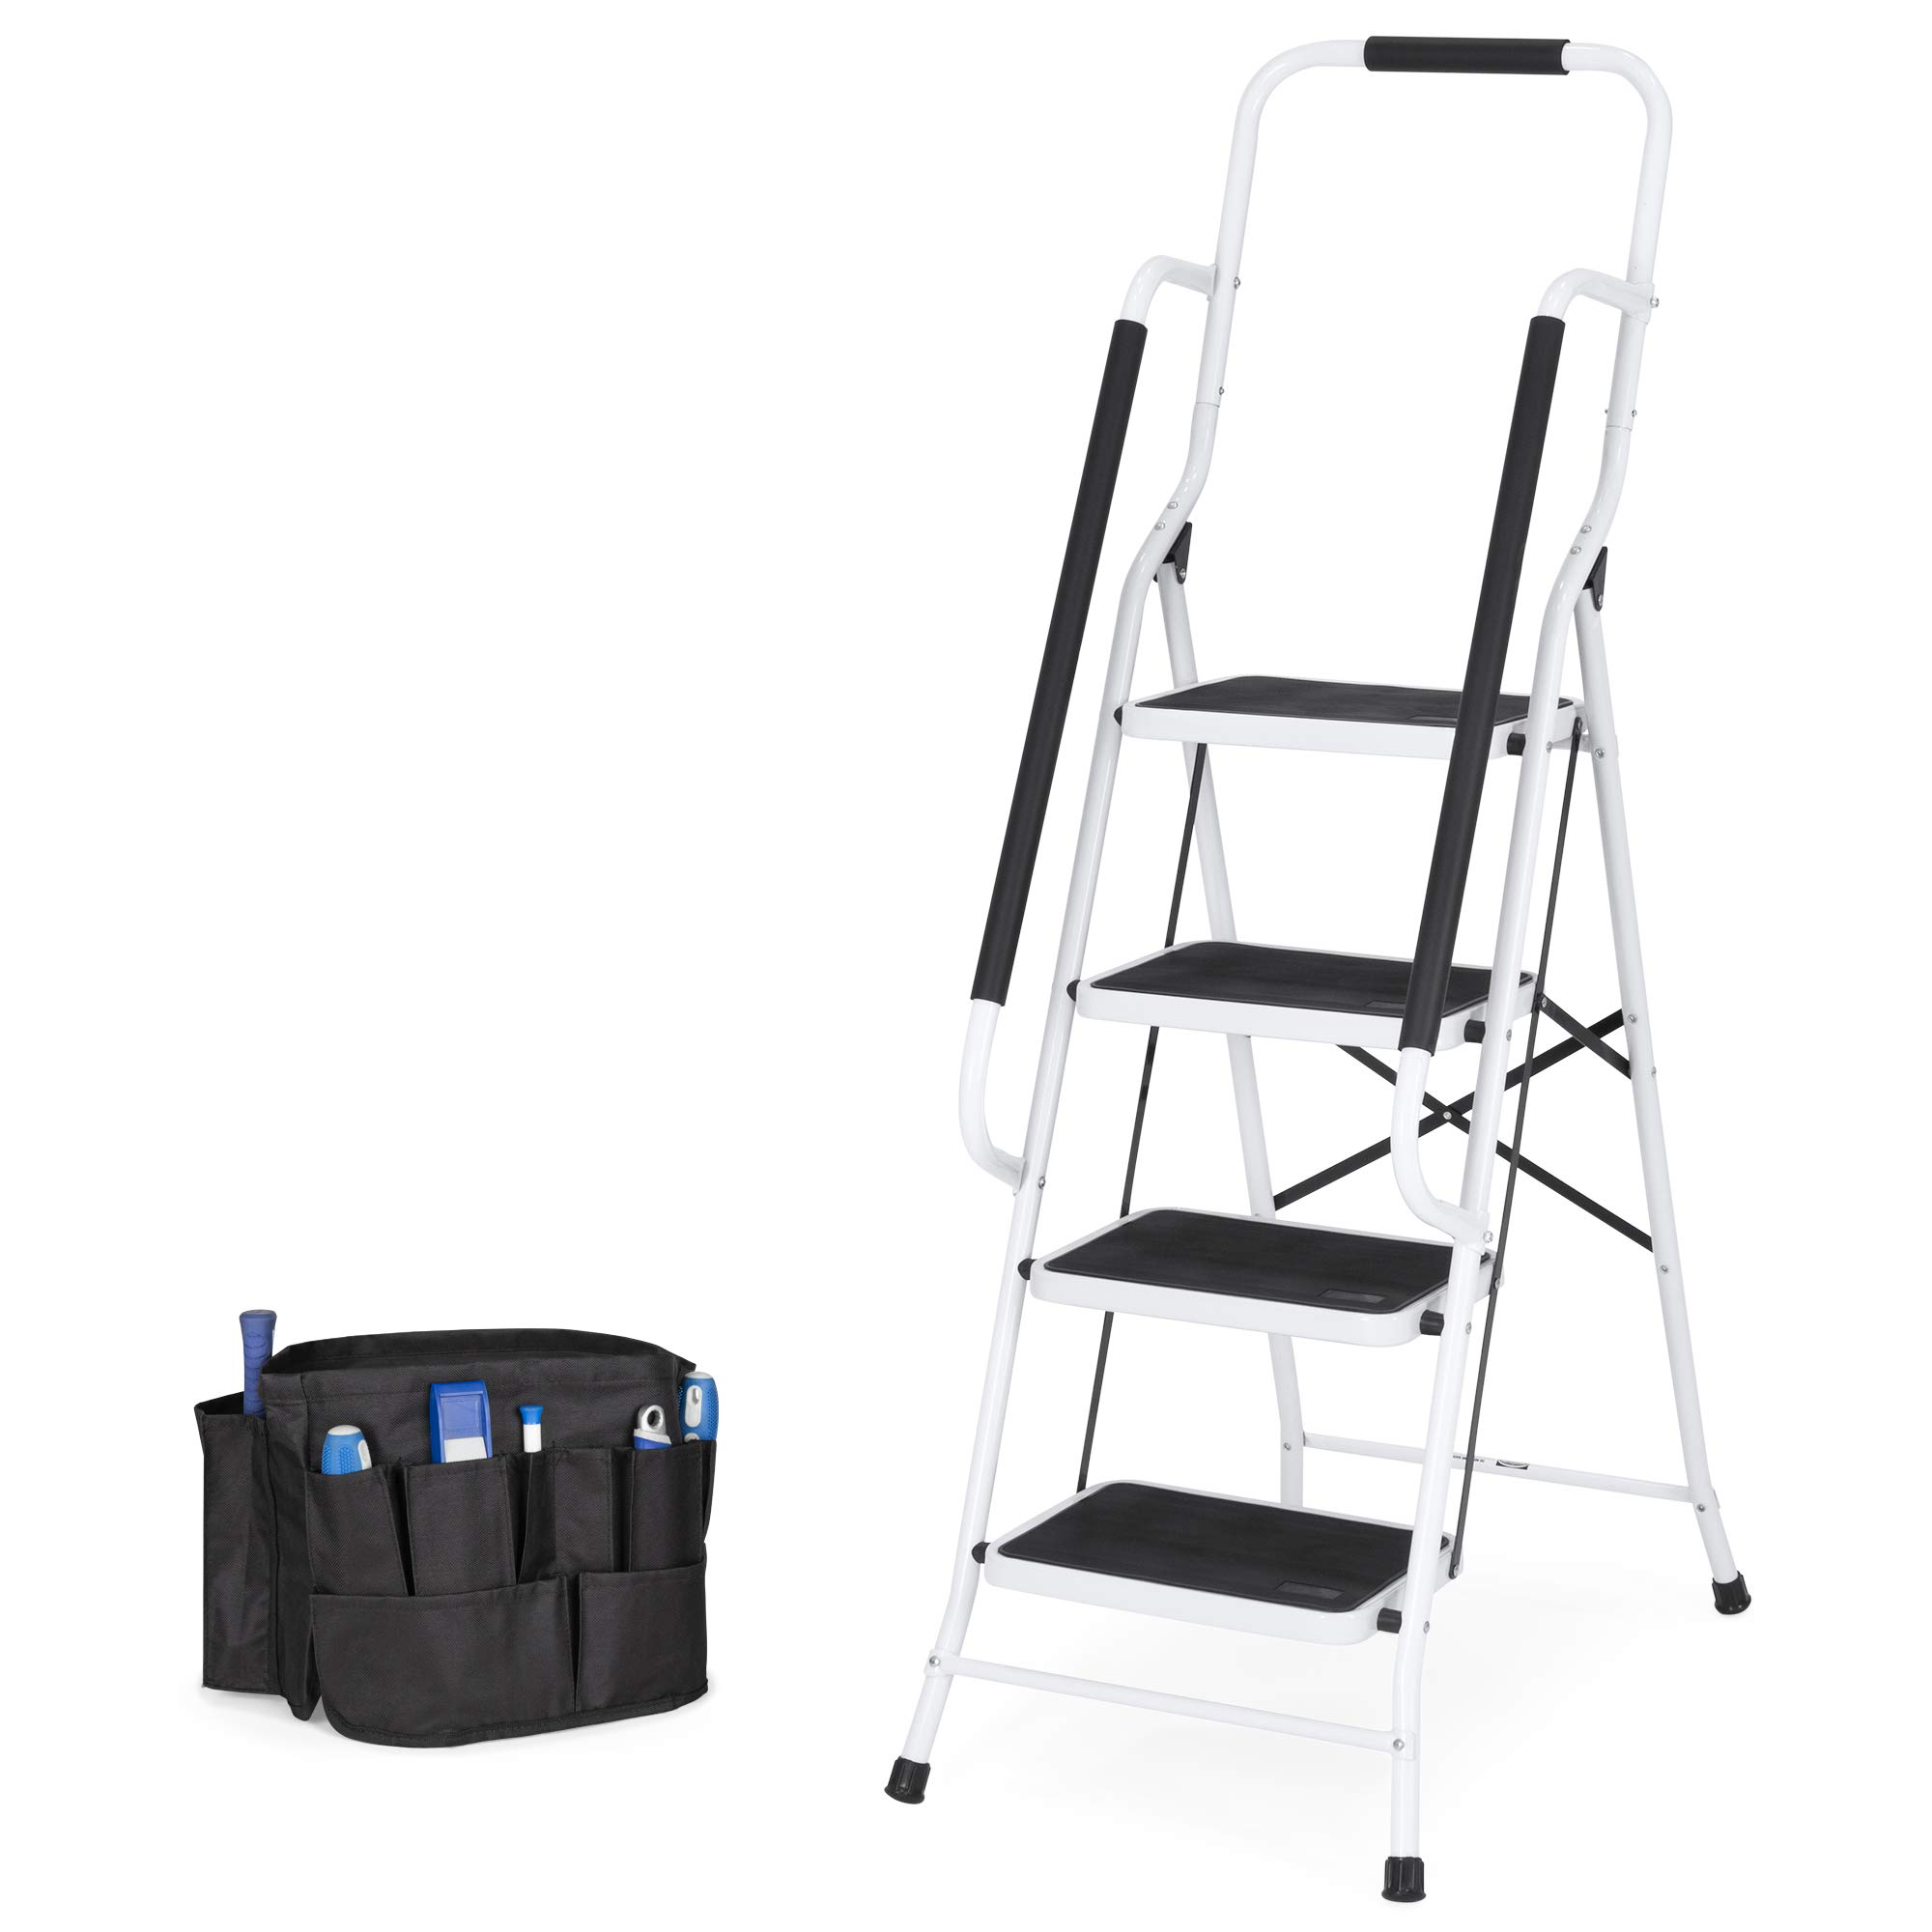 Best Choice Products 4-Step Folding Ladder w/Padded Handrails, Attachable Tool Bag by Best Choice Products